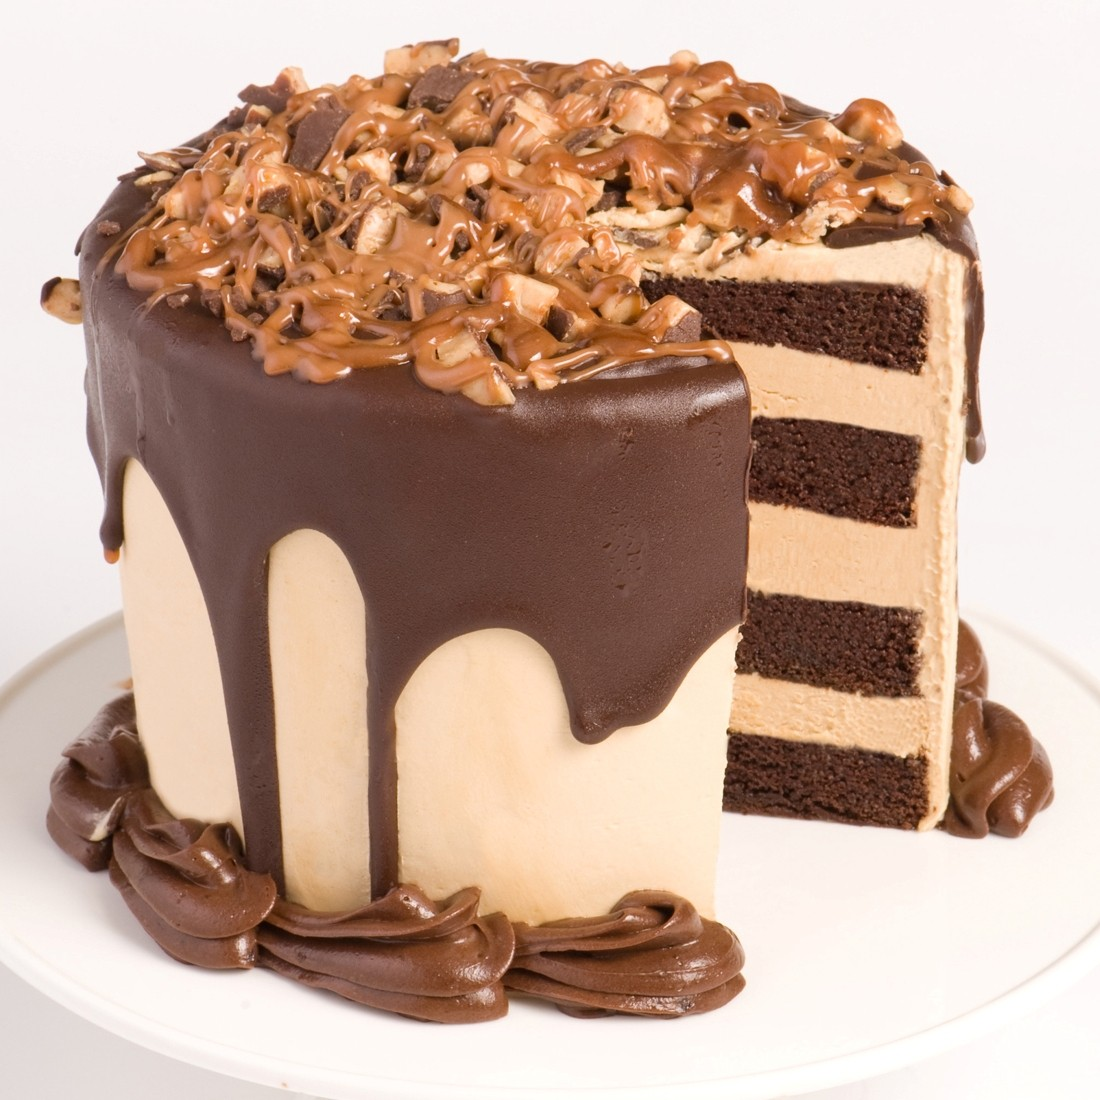 Chocolate Mousse Ice Box Cake Recipe